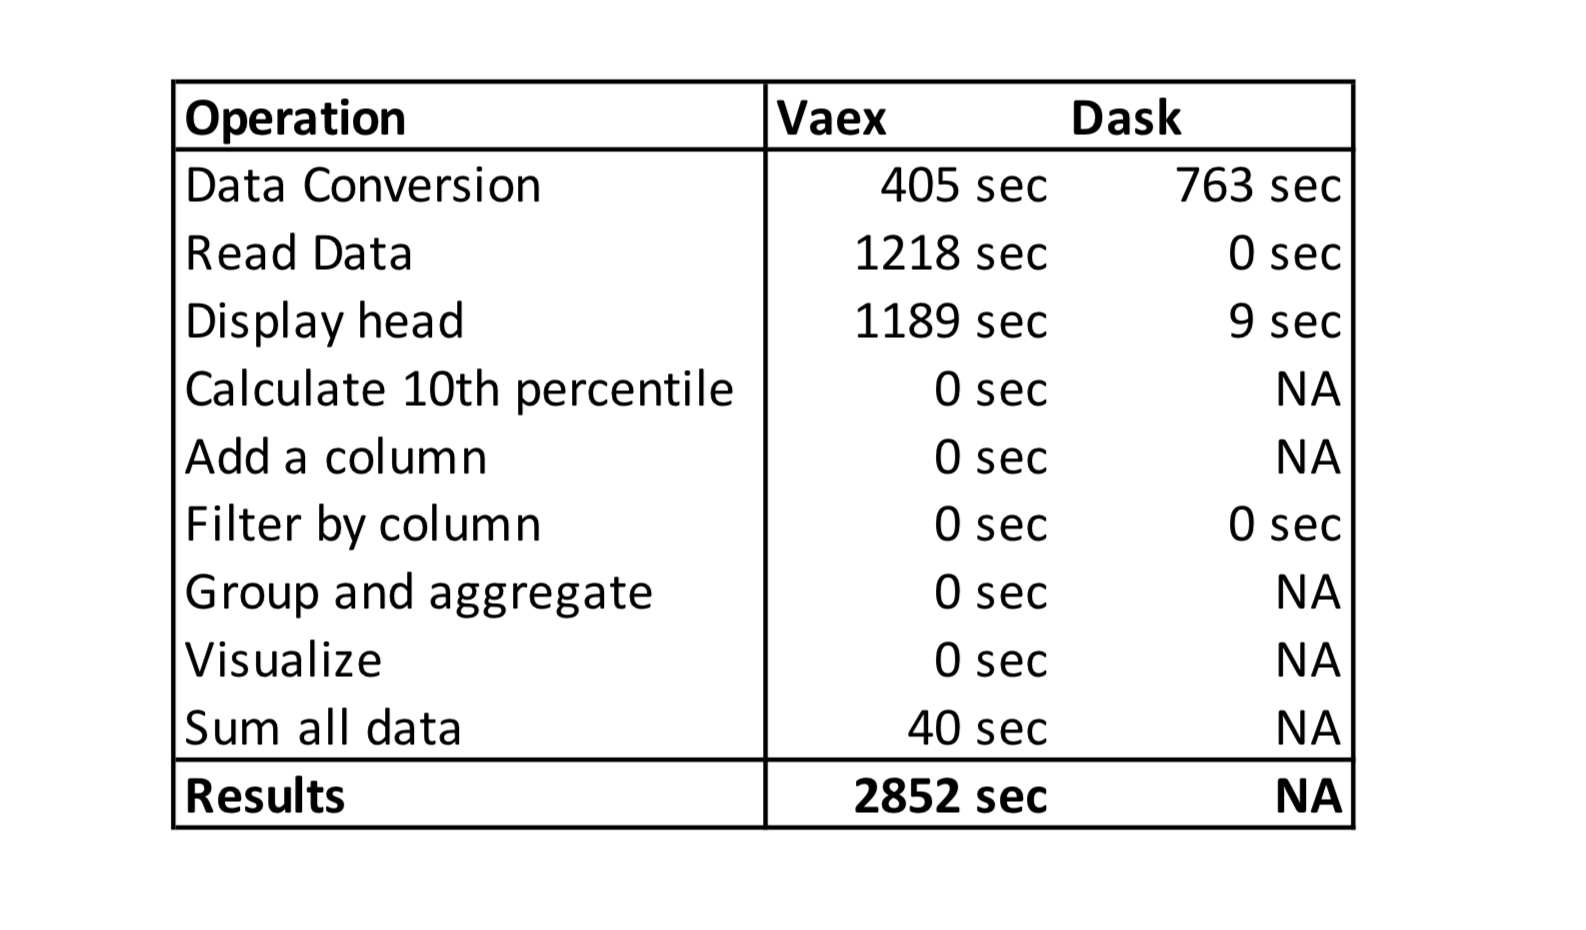 Summary of execution times in the experiment.